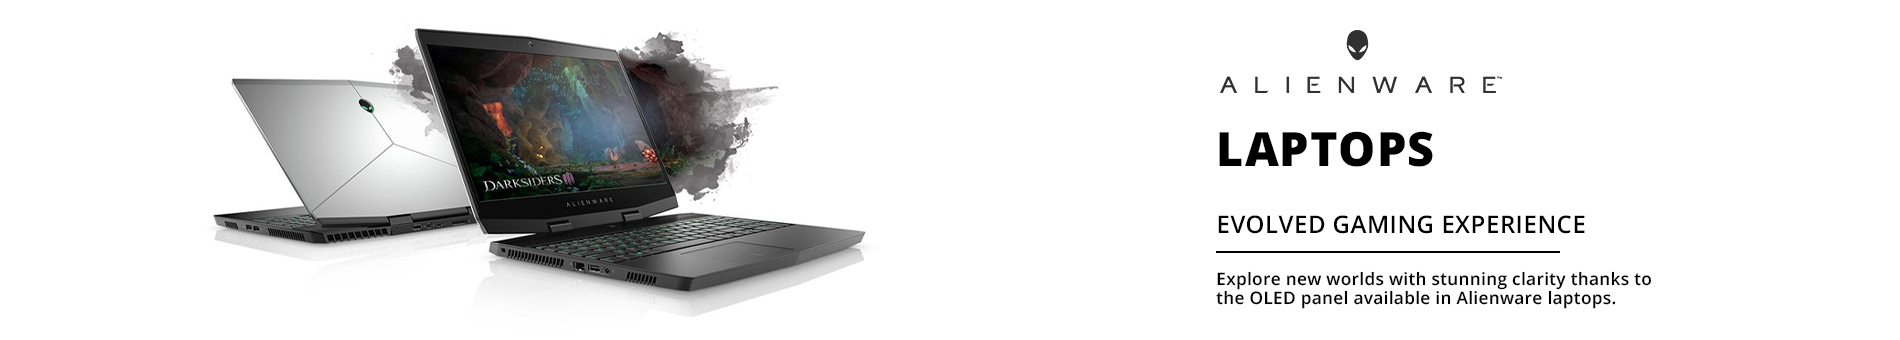 Dell Alienware Notebooks Landing Page Edits  Banner 01